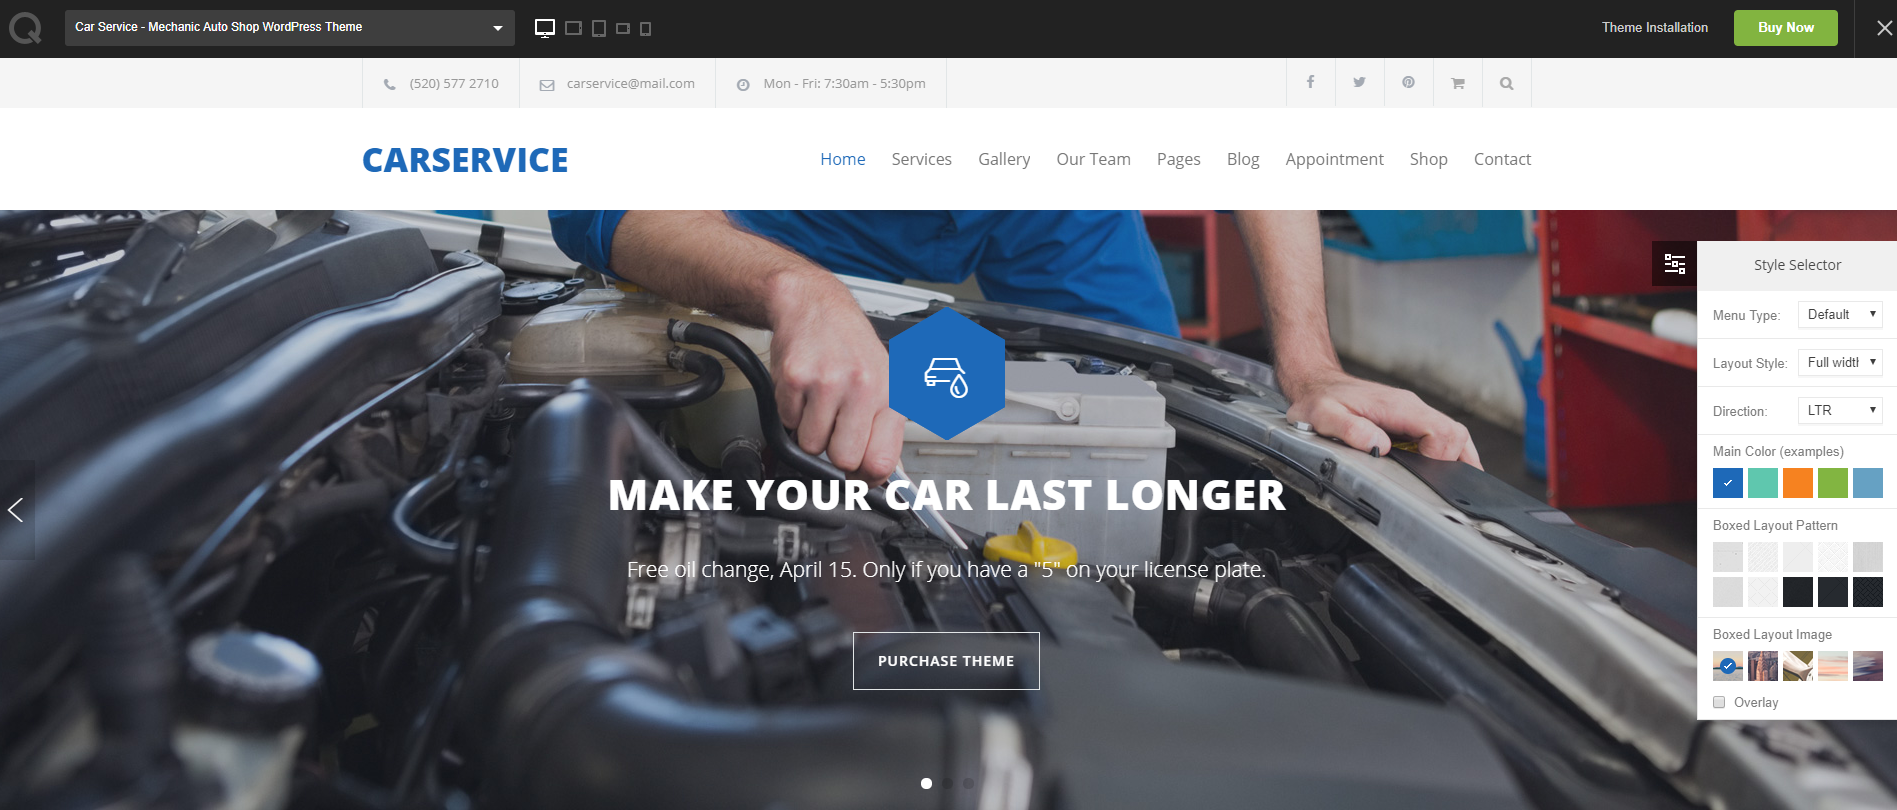 Car-service-wp-theme